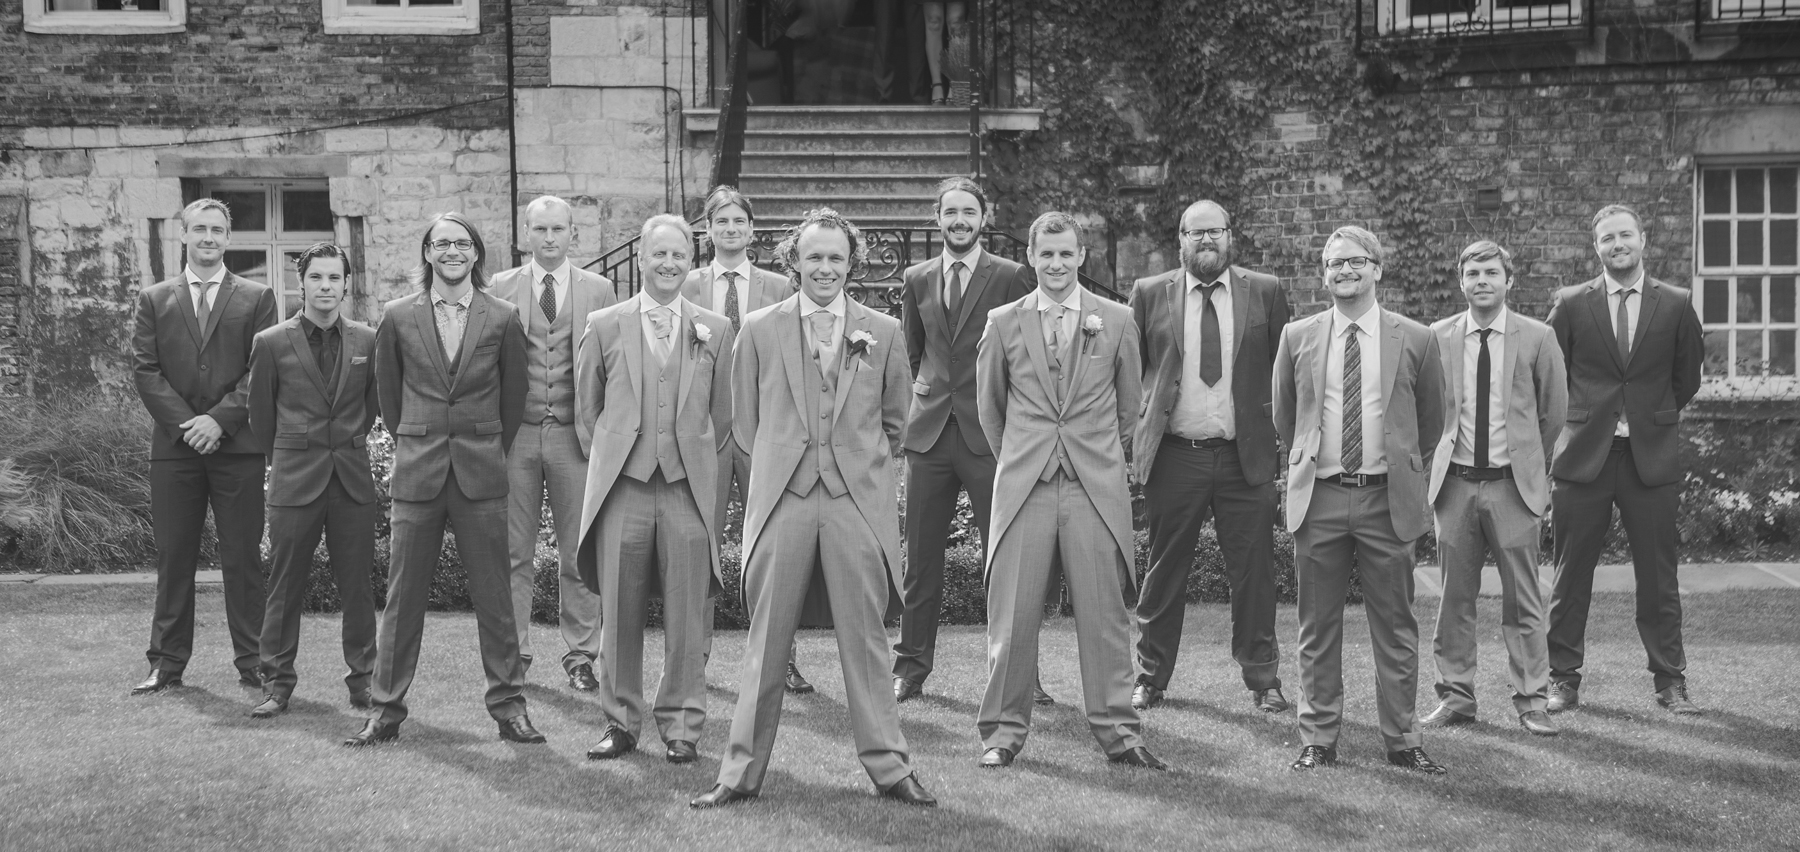 All groomsmen together during weddin